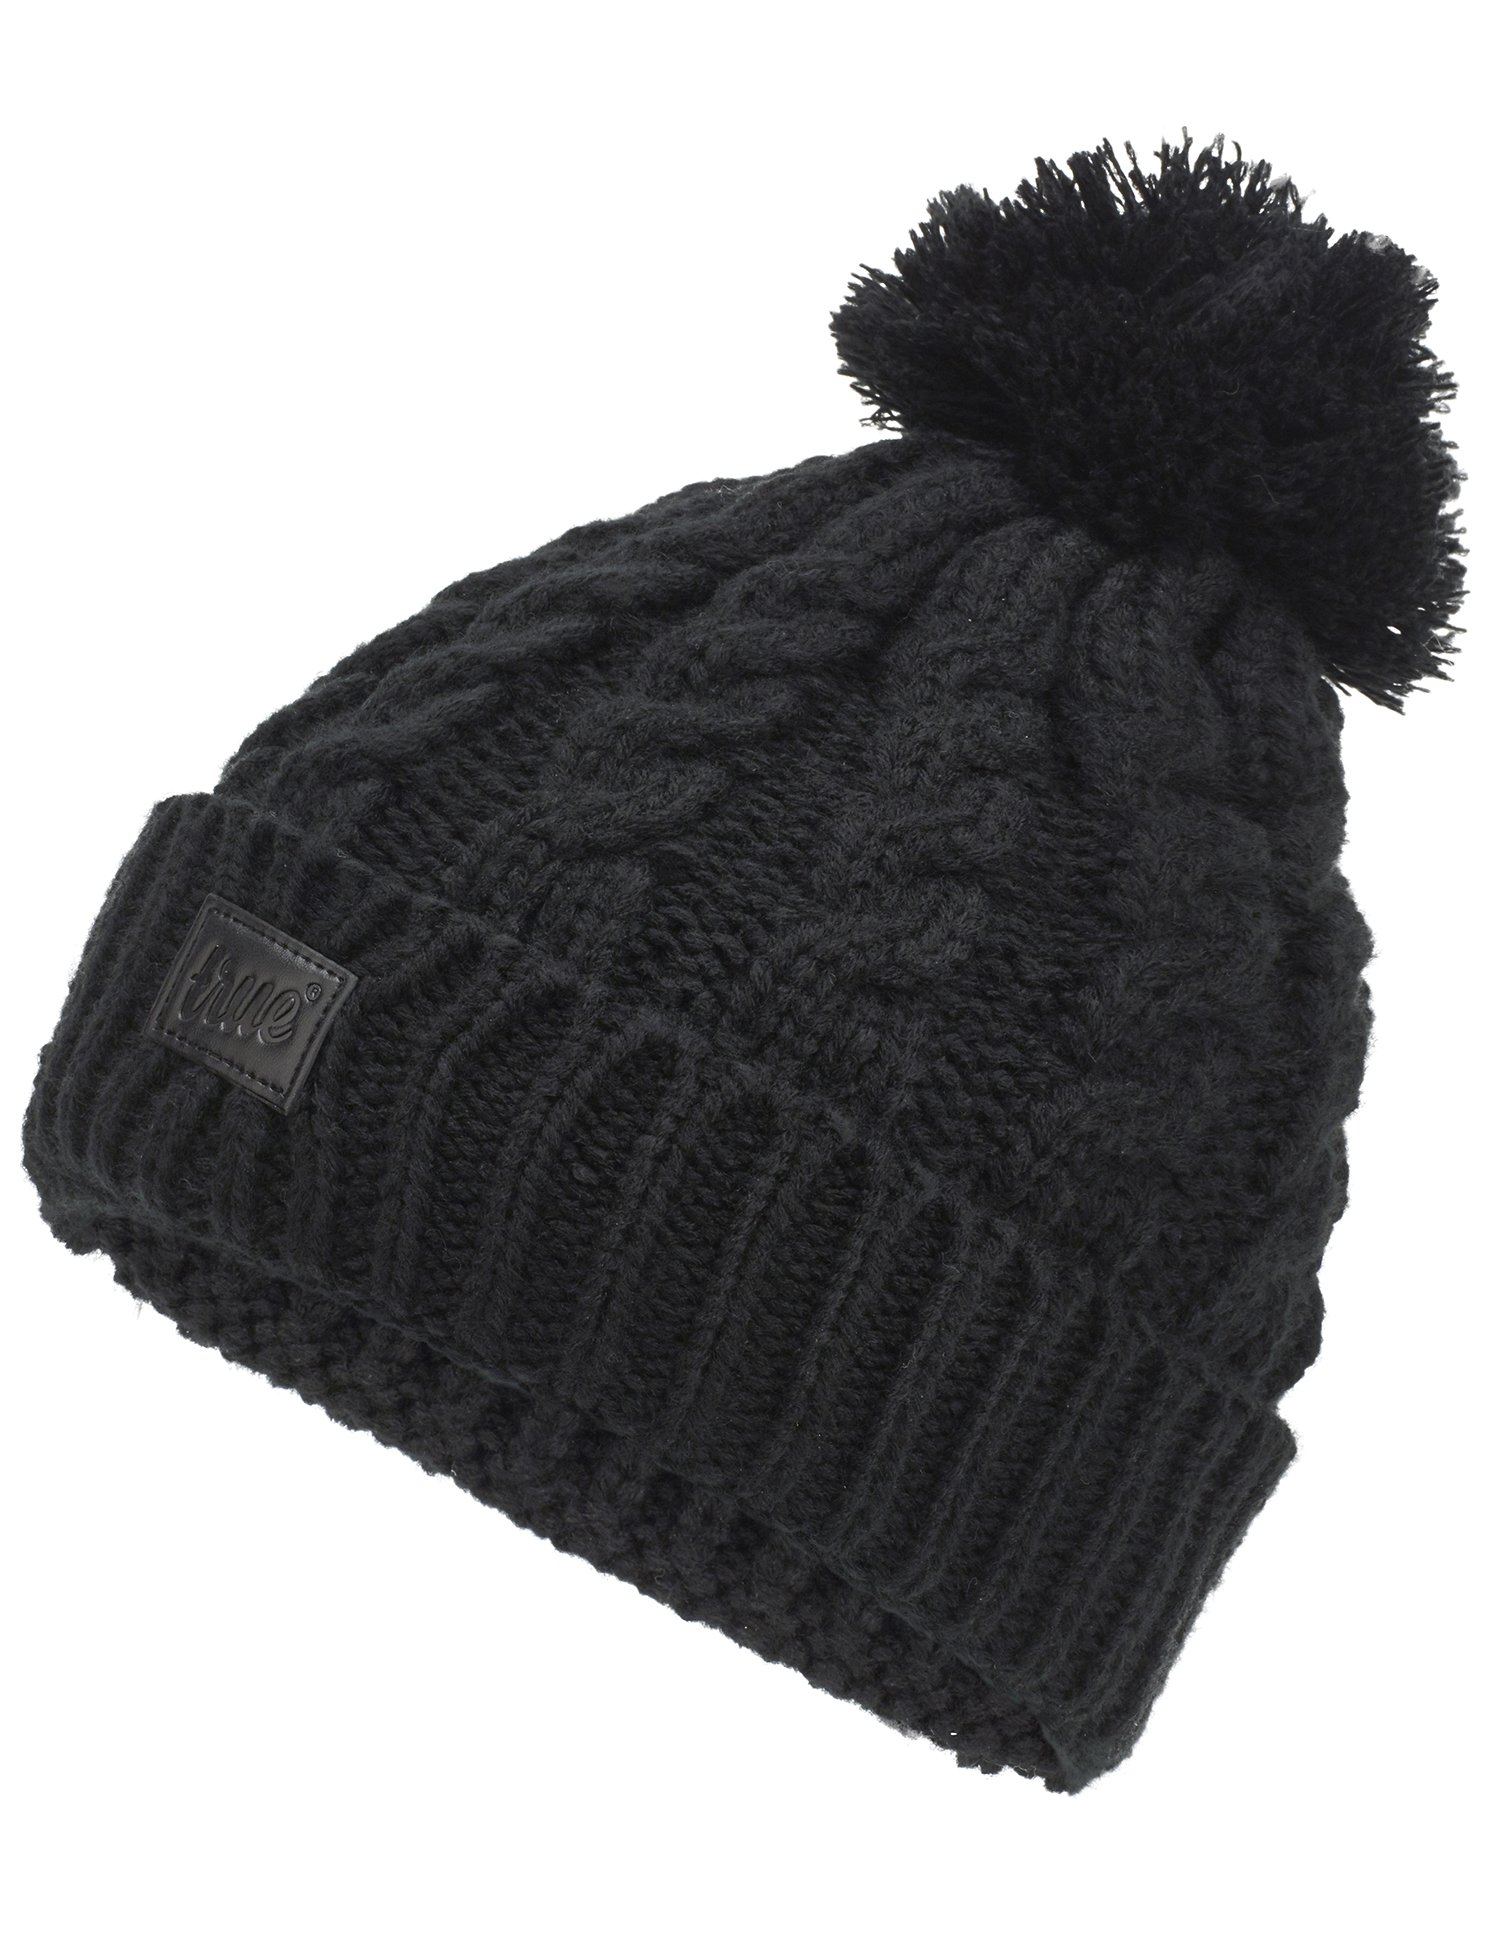 Womens Beanie Hat - Stylish Black Chunky Cable Knitted Bobble Hat wi ... a505e77eb3f